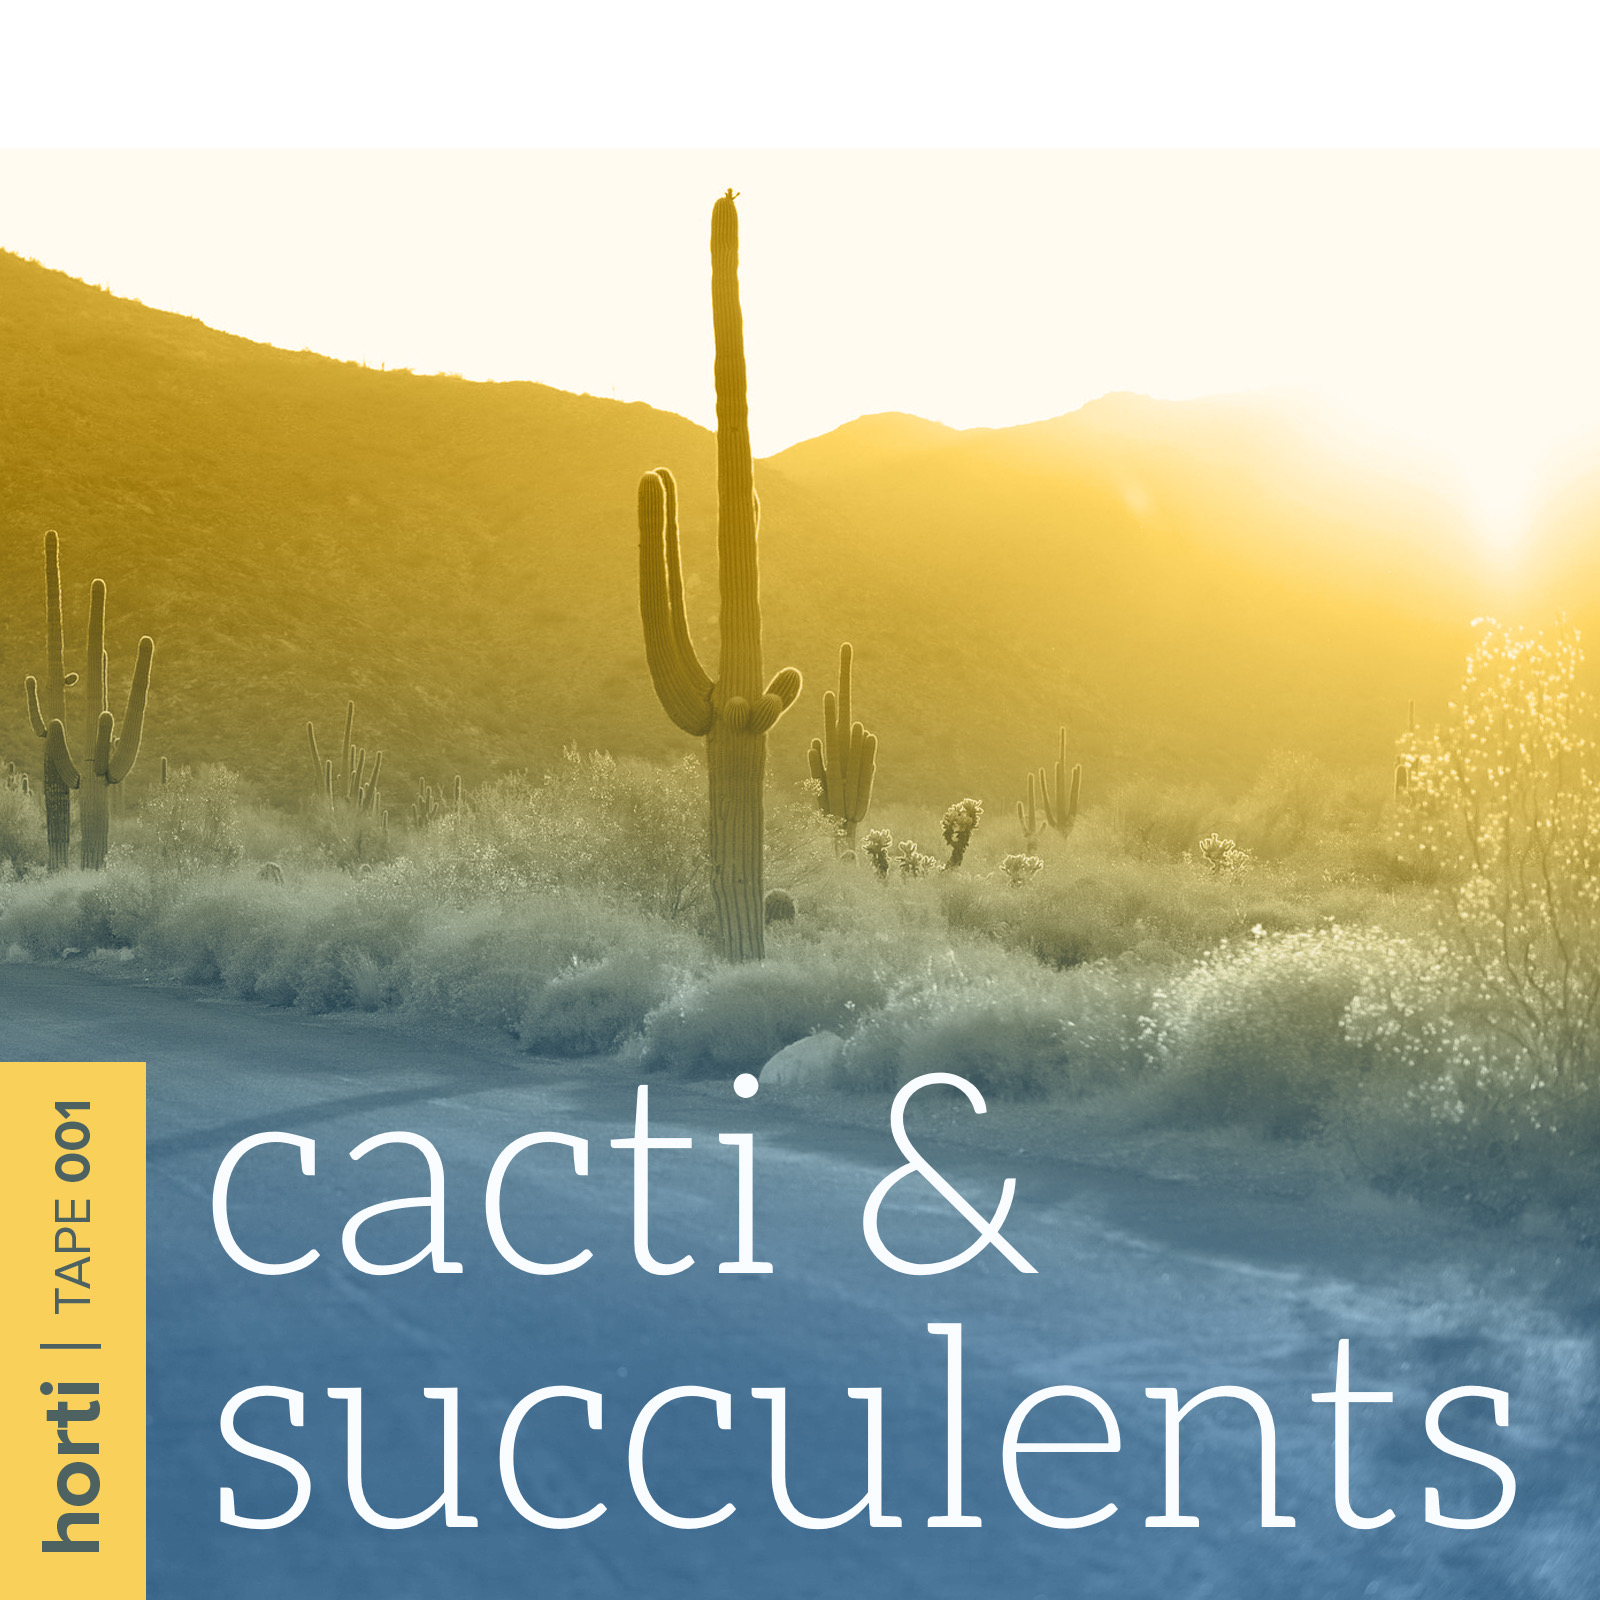 A botanical playlist & kundalini meditation journey - Inspired by sensual succulents and resilient cacti, curated by DJ Kyma for horti.